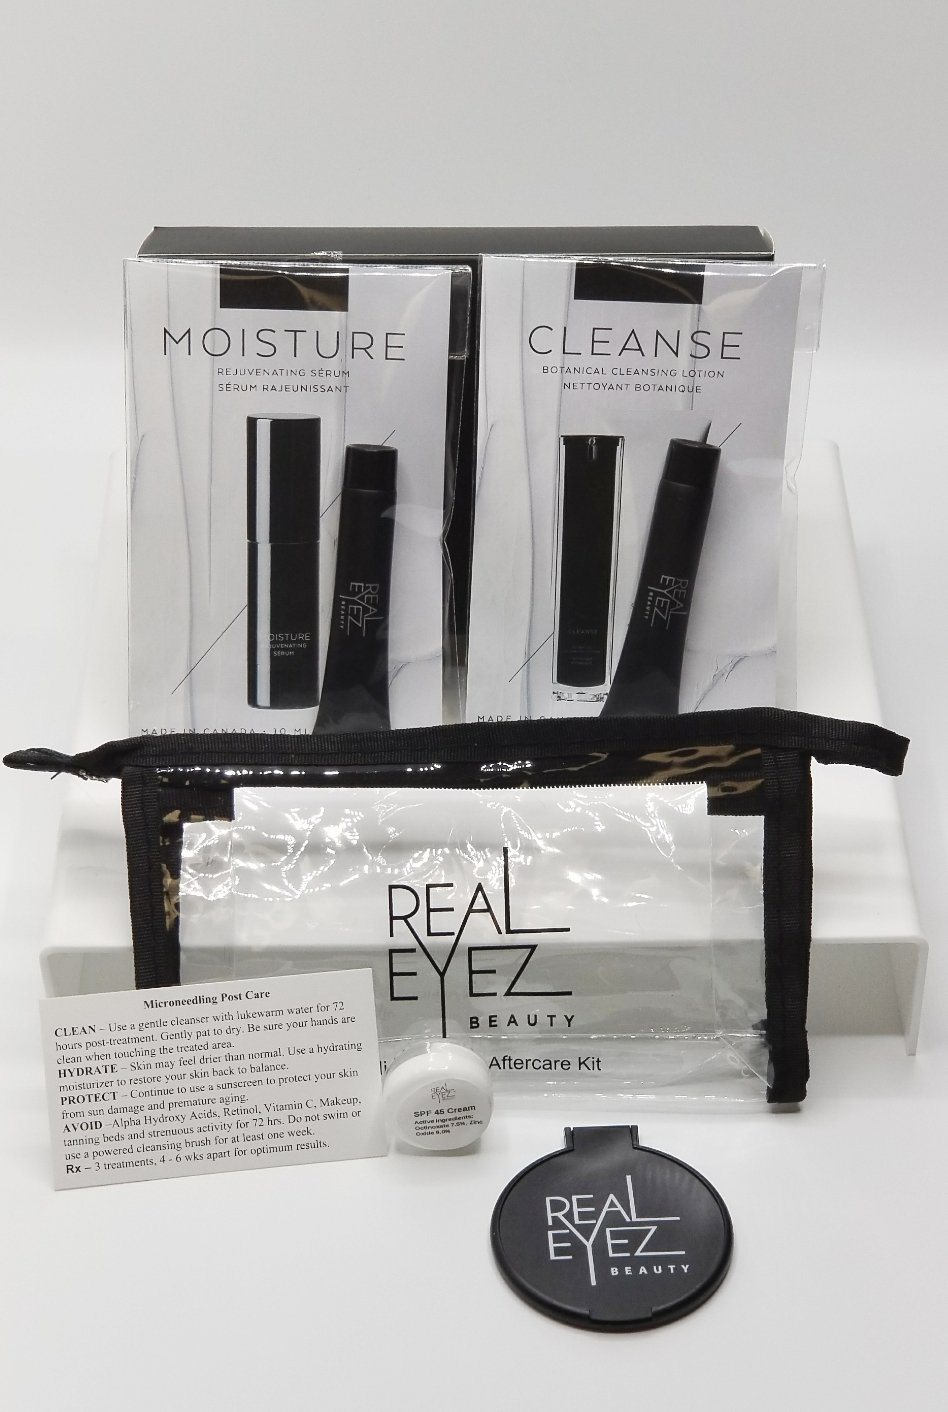 Microneedling Aftercare Kits (5 ct) [product_price] Real Eyez Beauty